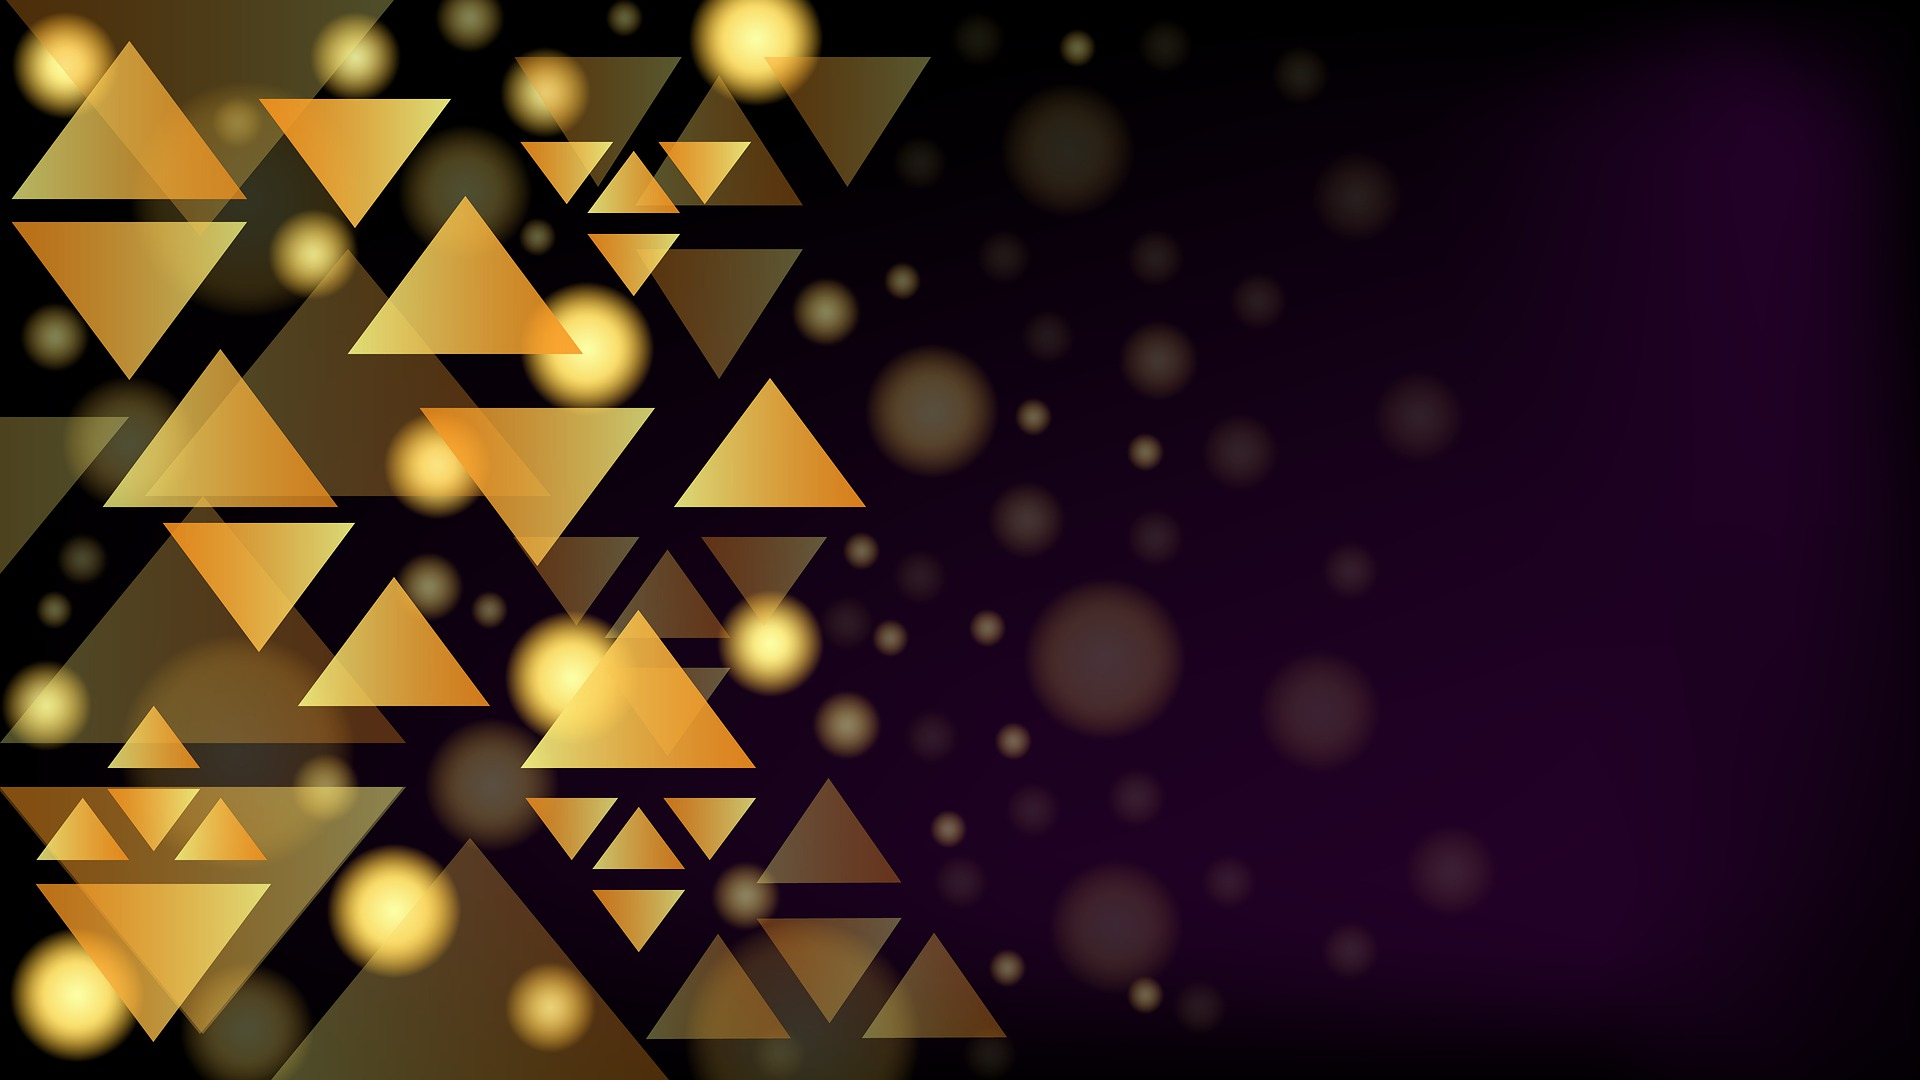 Black background with golden triangles